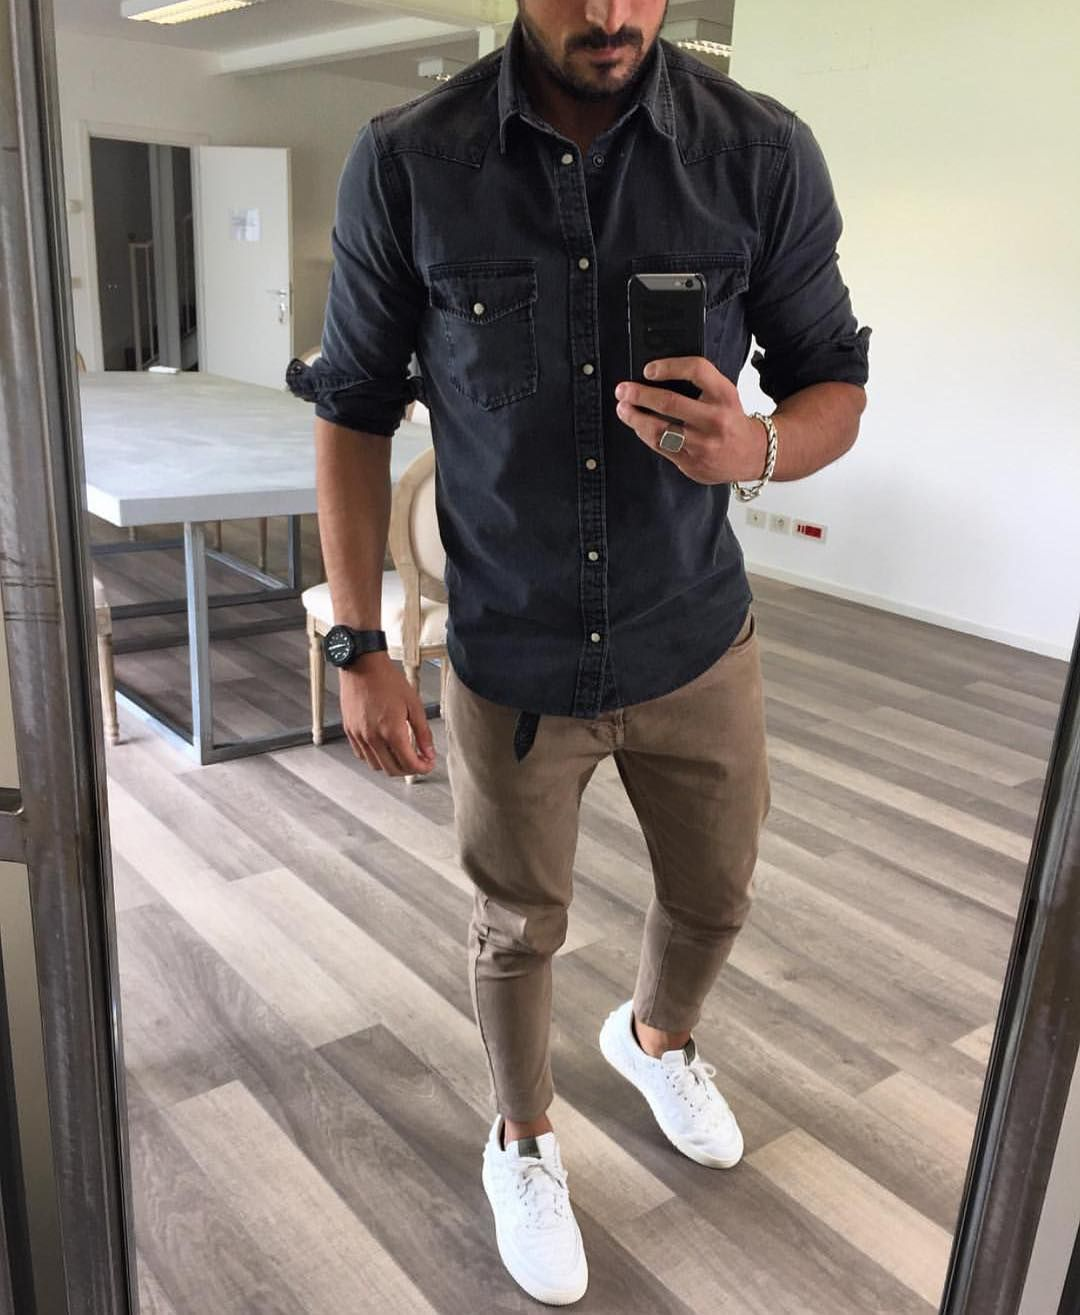 Men 39 s fashion instagram page brown jeans denim shirt Fashion style on instagram